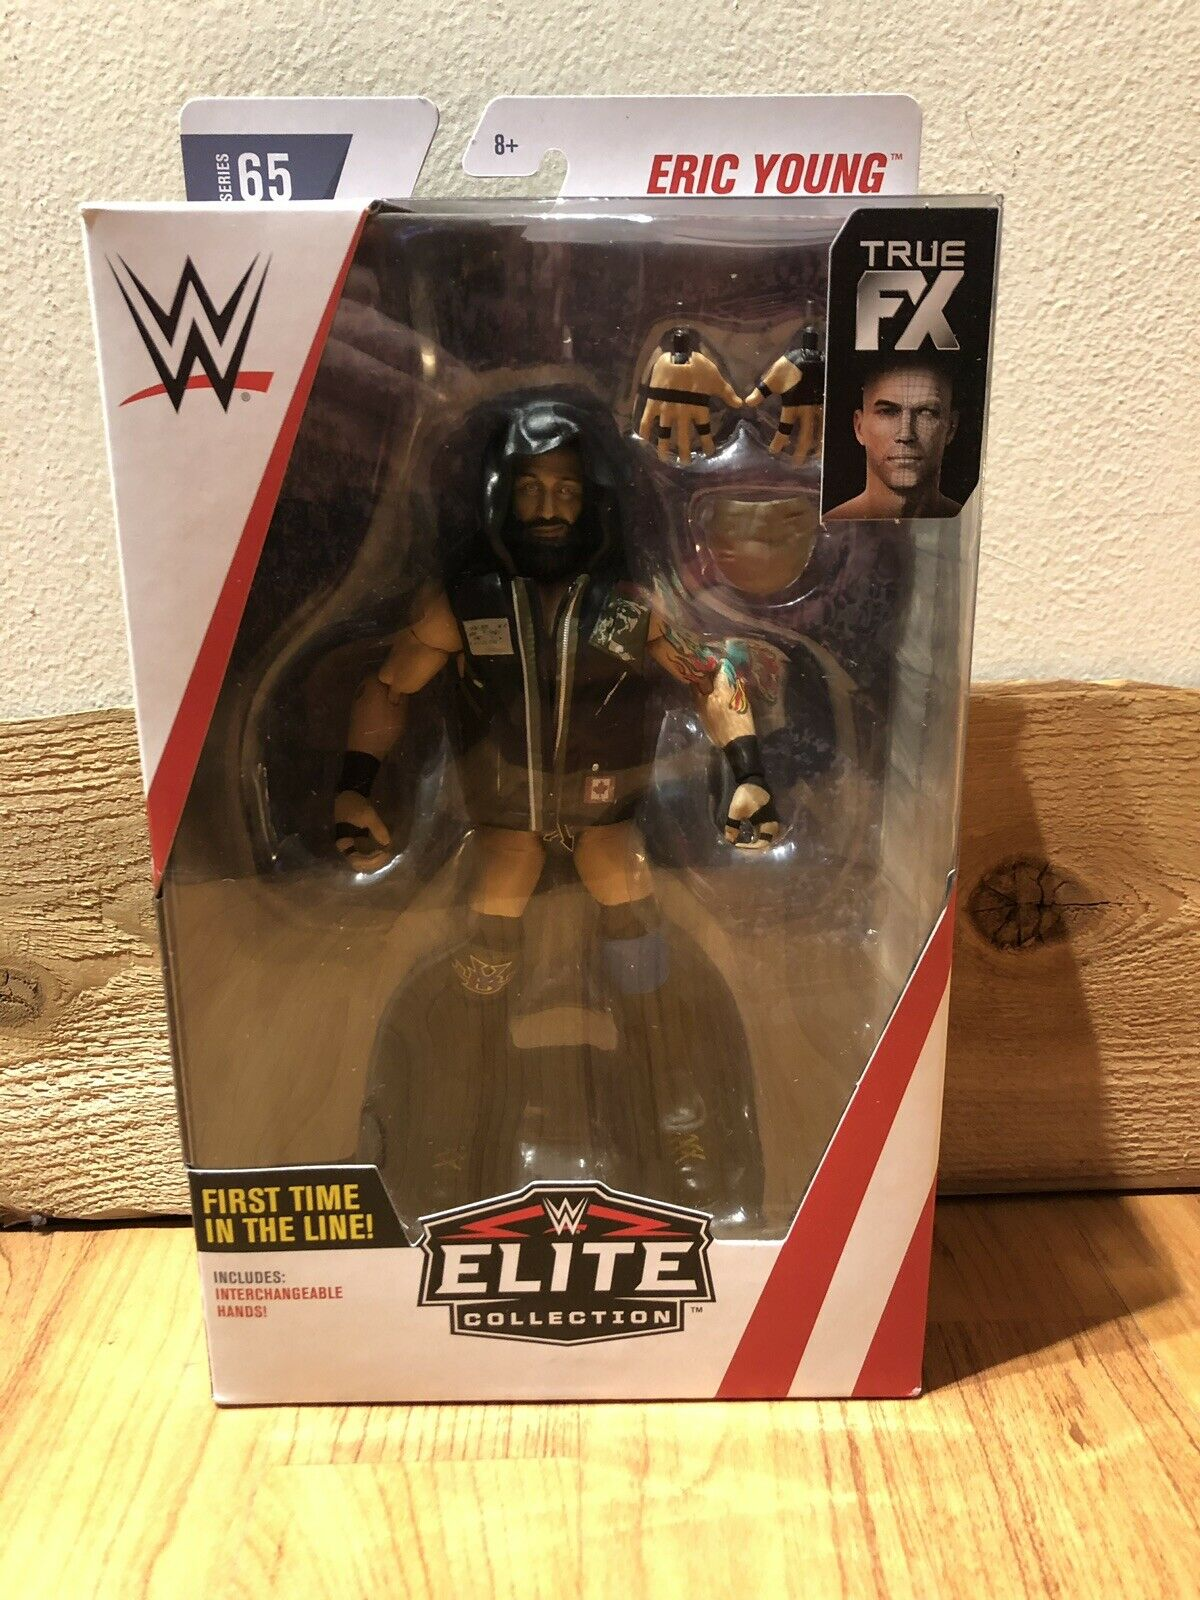 Eric Young Sanity WWE Mattel Elite Series 65 First Time in Line Figure Predector